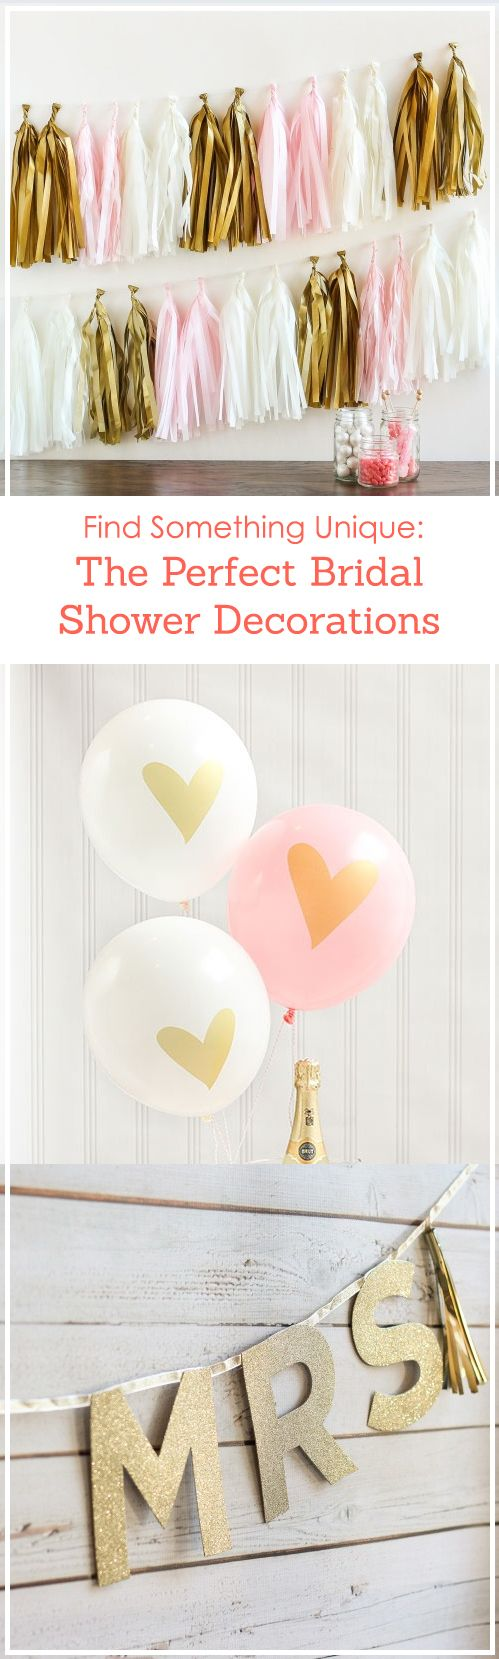 Celebrate the bride-to-be with a fun and unique bridal shower! Find the perfect decorations to shower her with love, from balloons to tassels!